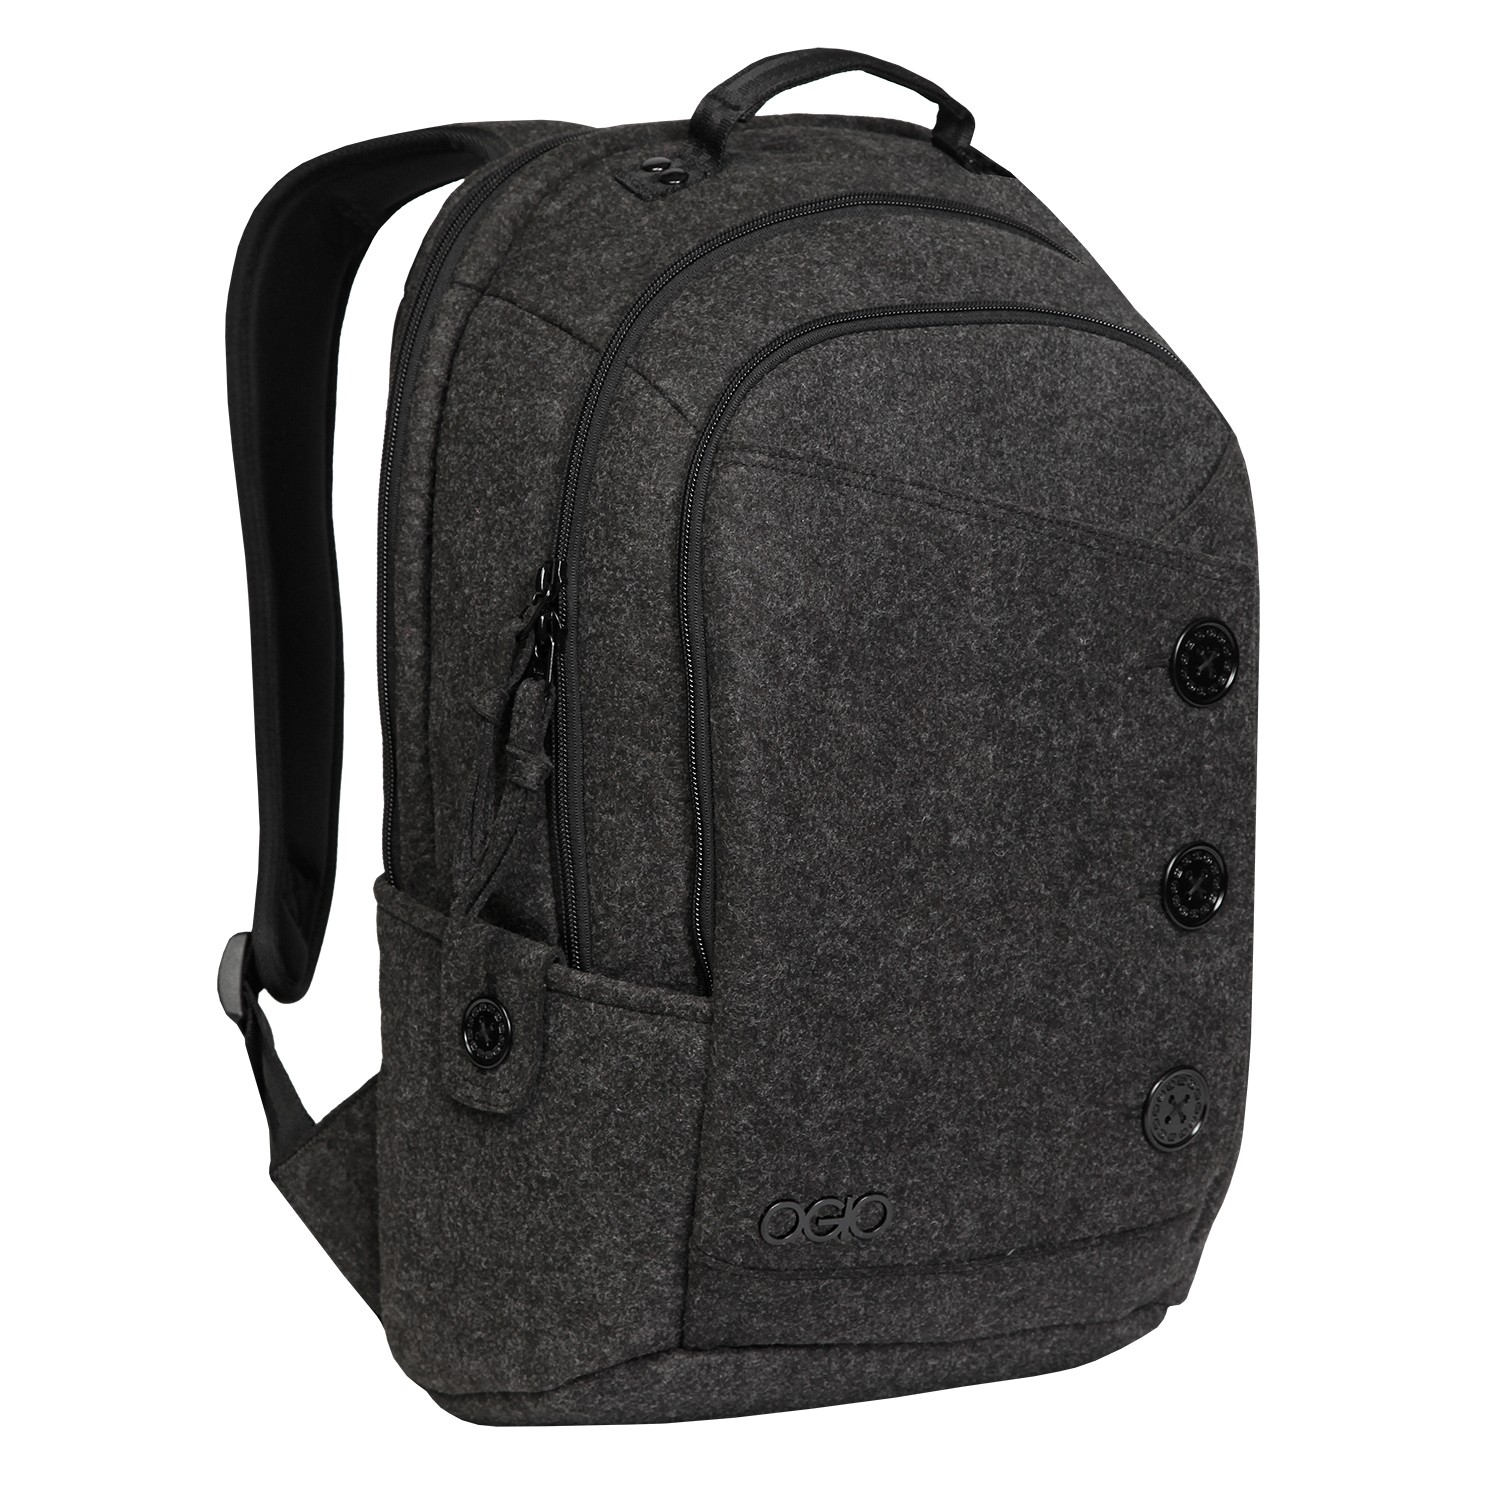 Ogio Soho Backpack krwatysA